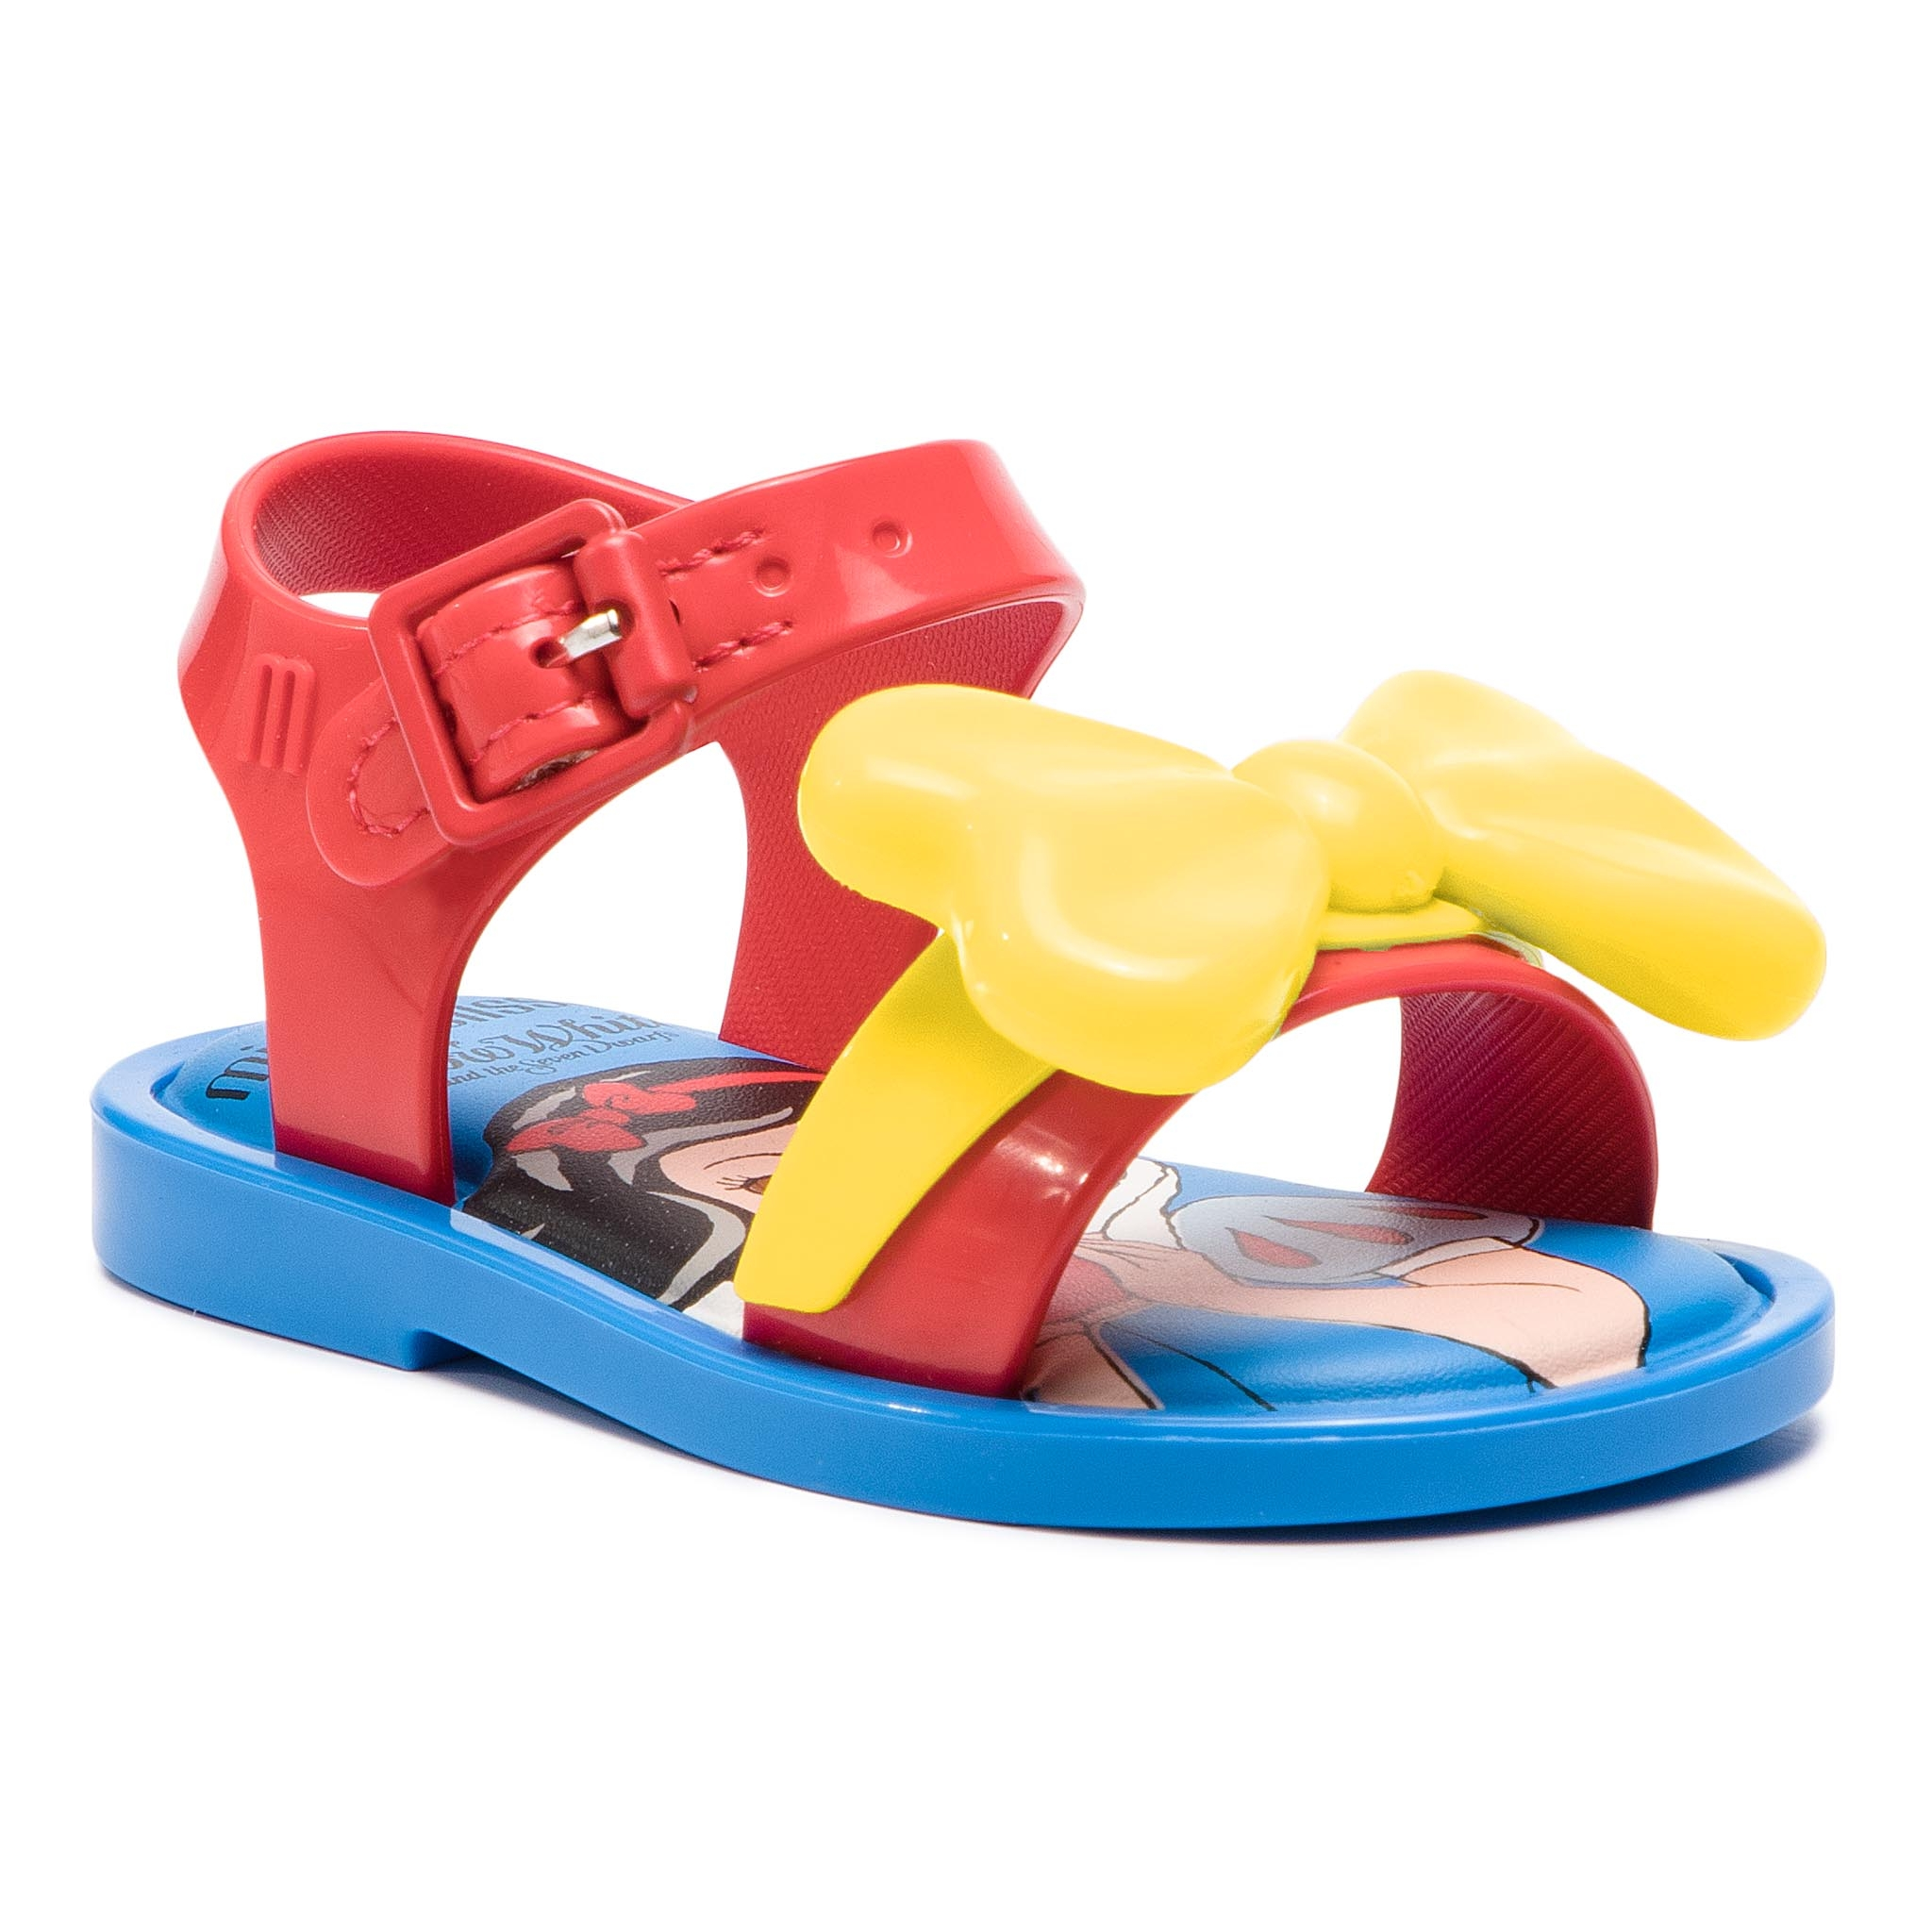 Sandale MELISSA - Mini Melissa Mar Sandal+Snow 32531 Blue/Yellow/Red 53213